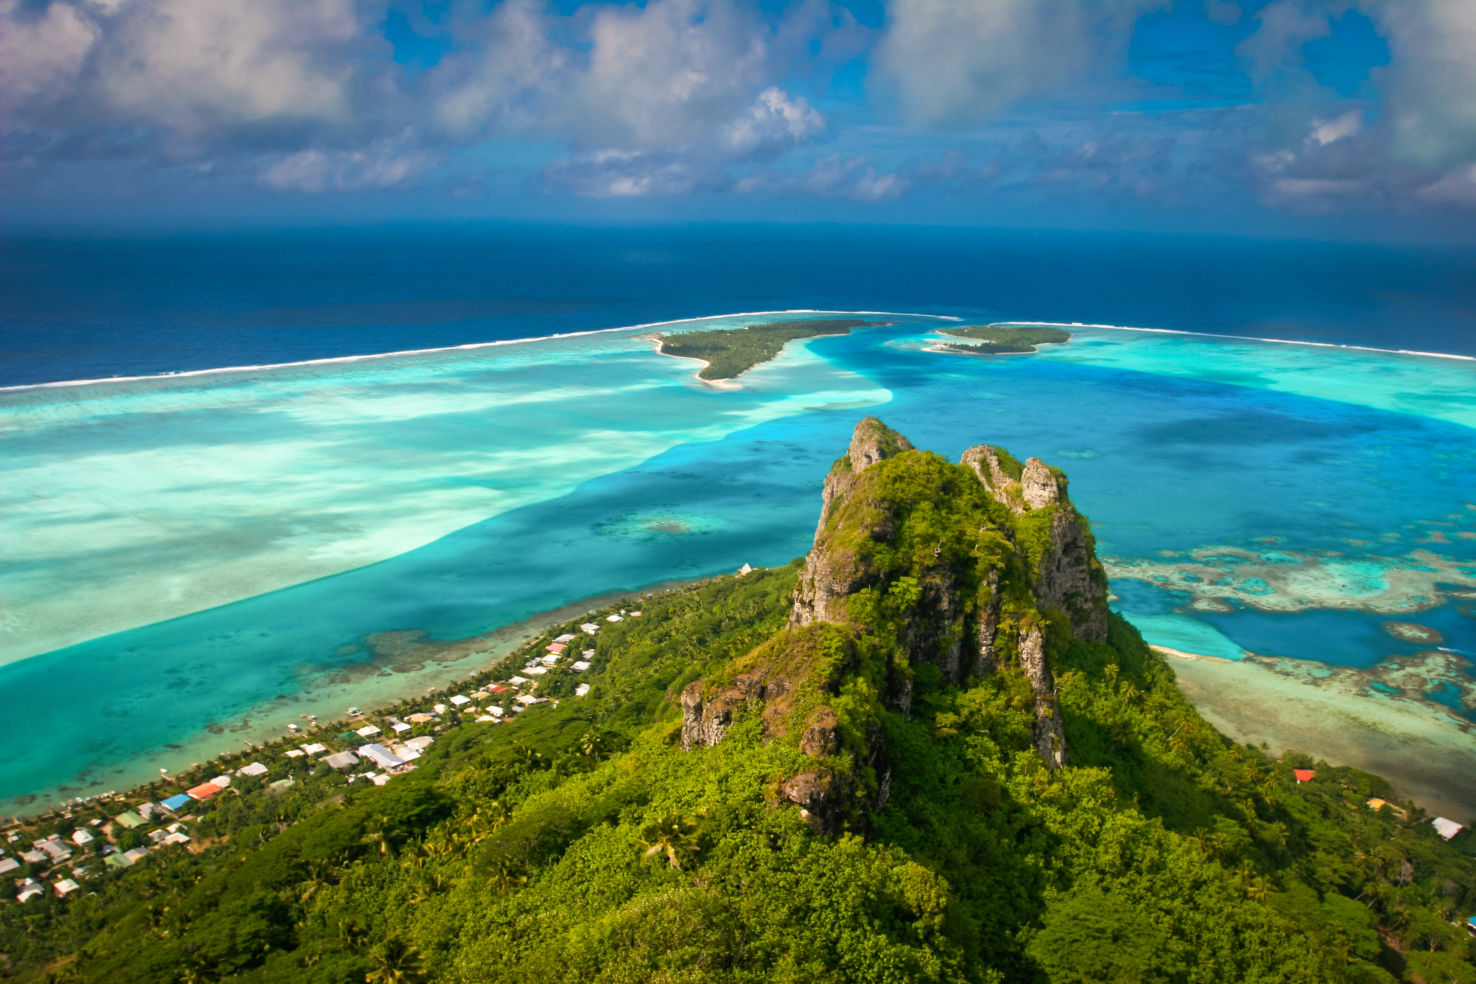 coral reef, Maupiti, French Polynesia